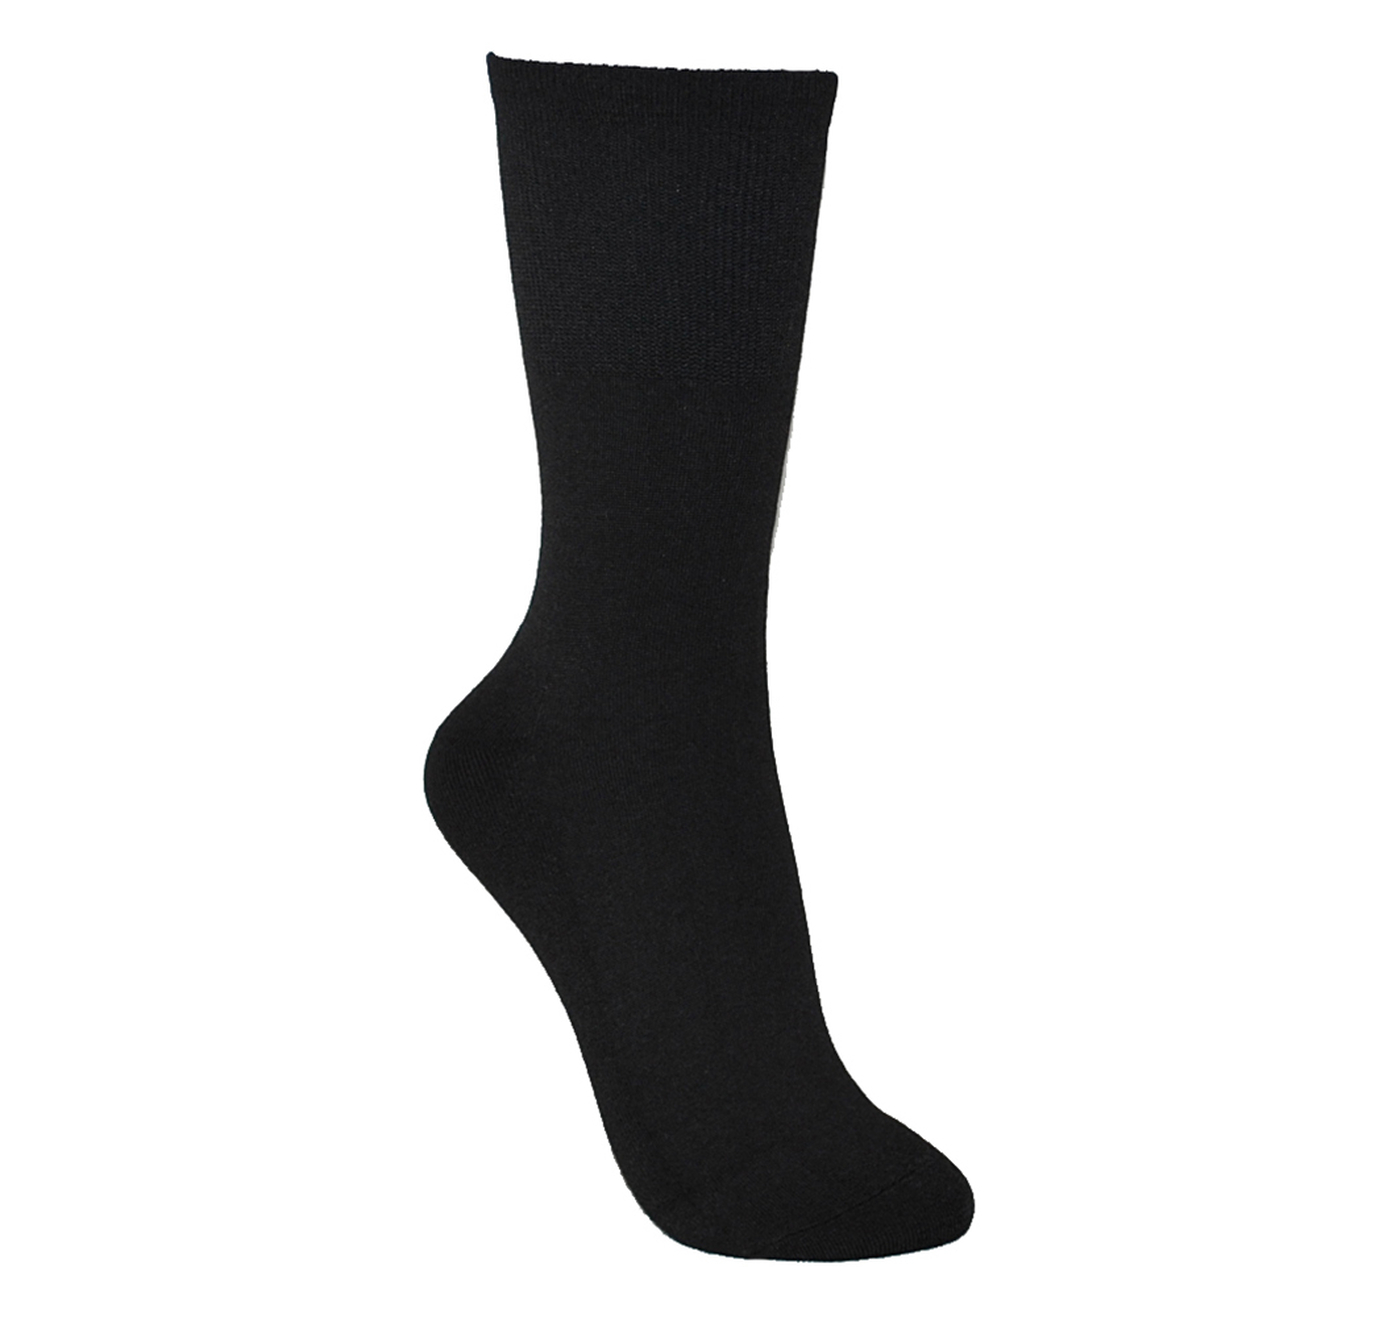 ECCO Womens Mid Cushion Sock